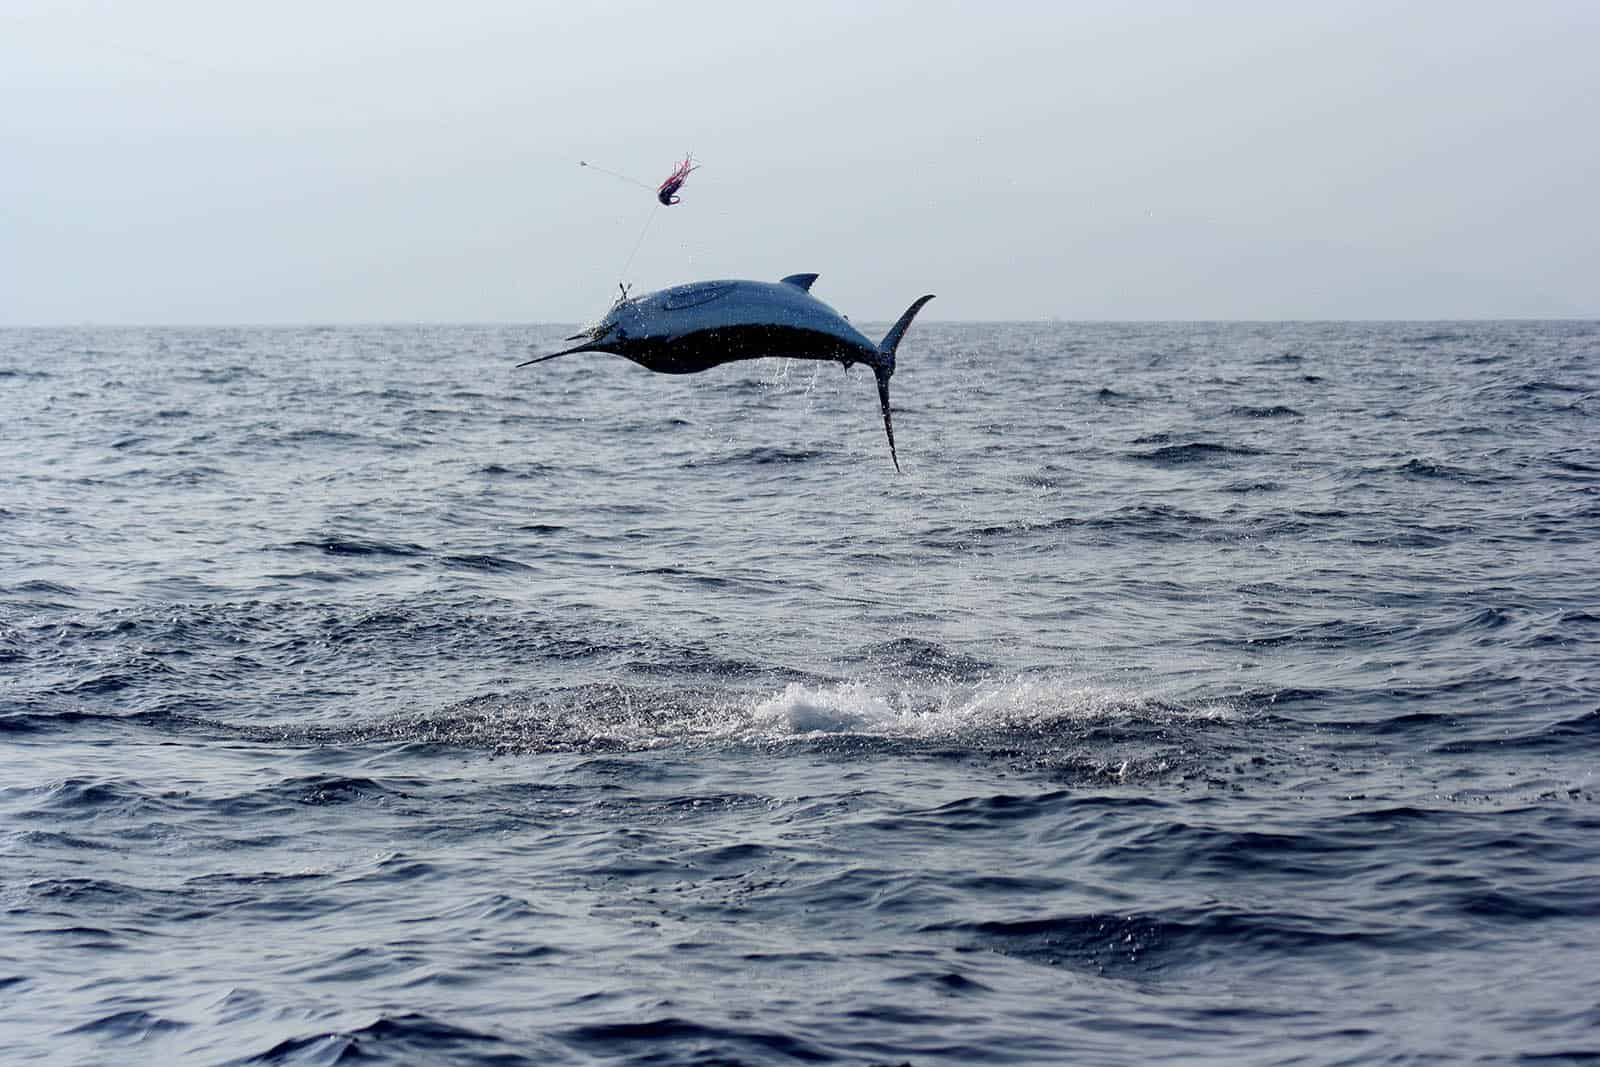 Blue Marlin Deep Sea Fishing in Aruba